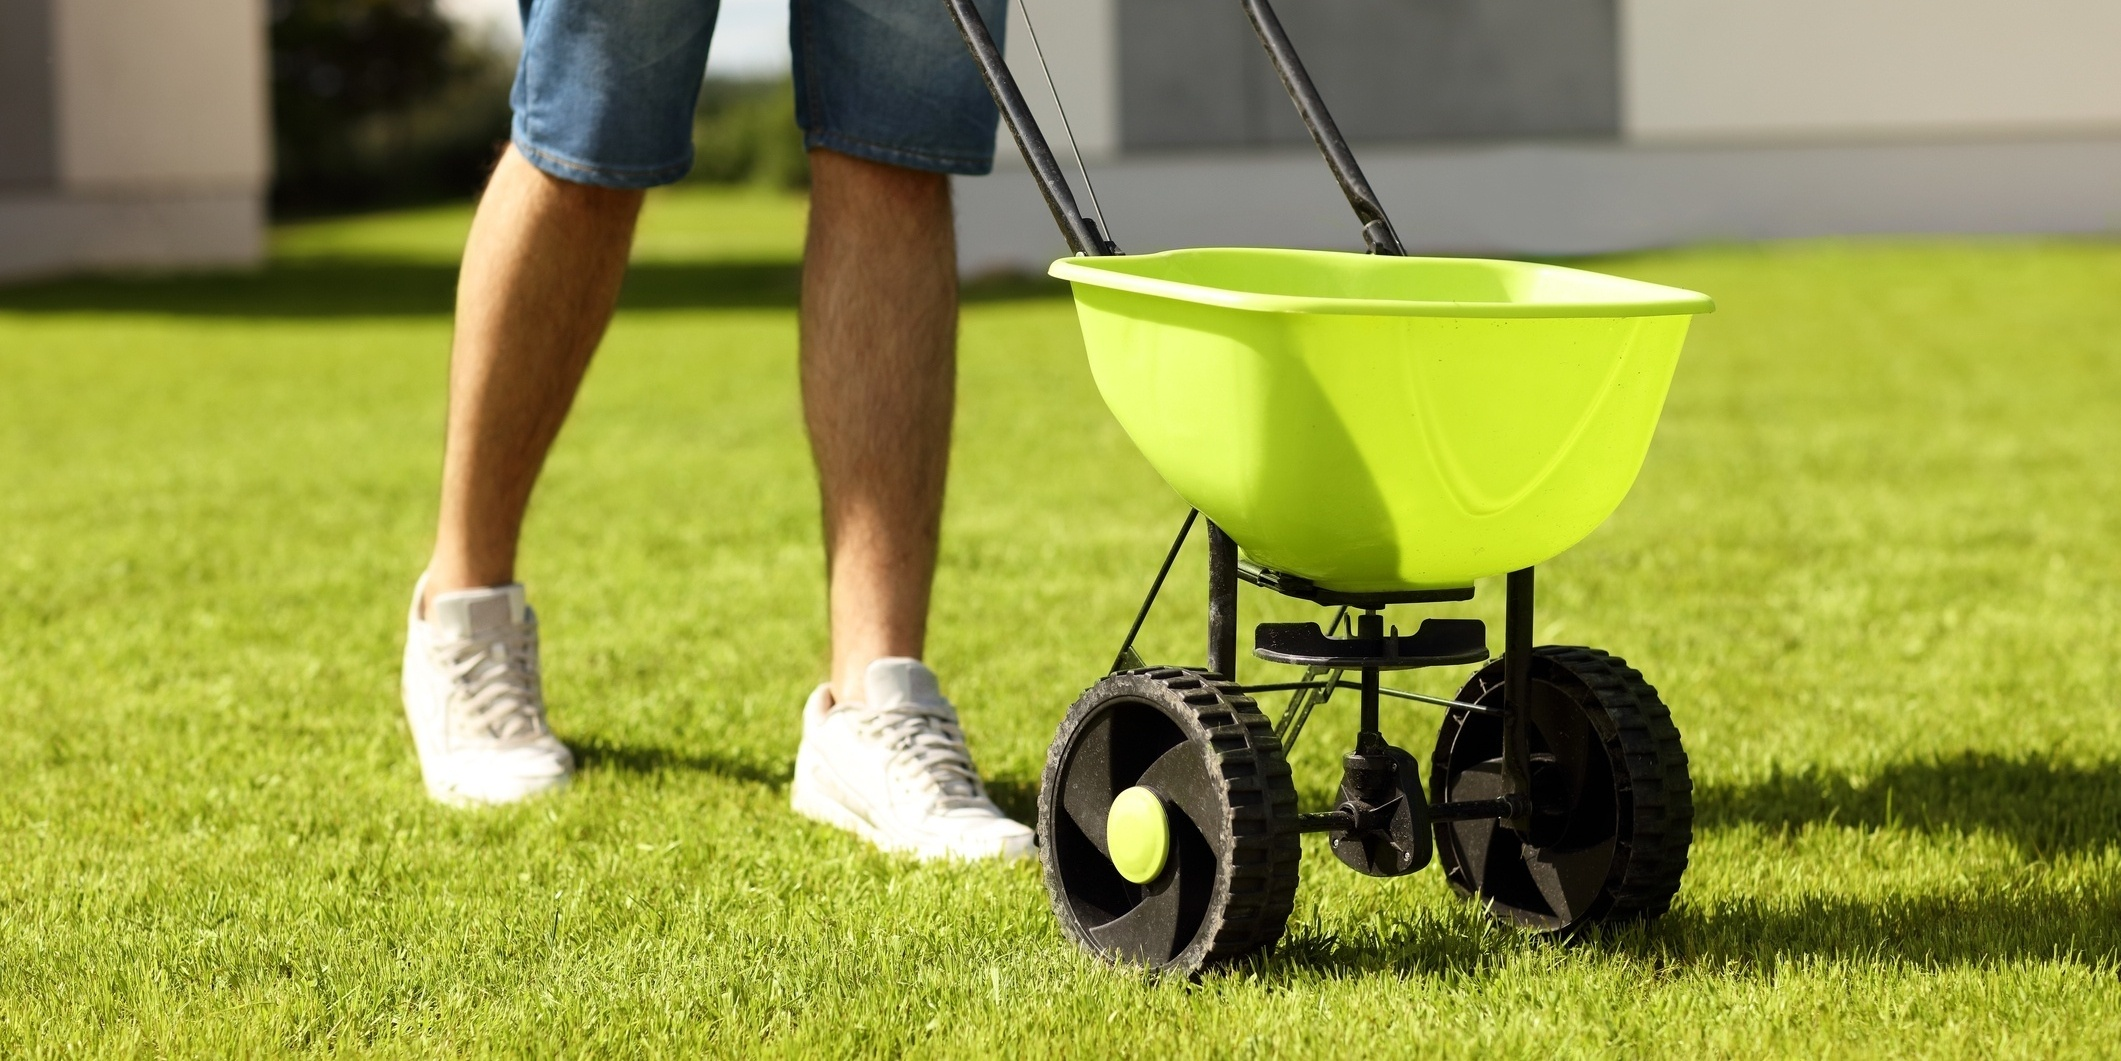 Use the right equipment when fertilizing.